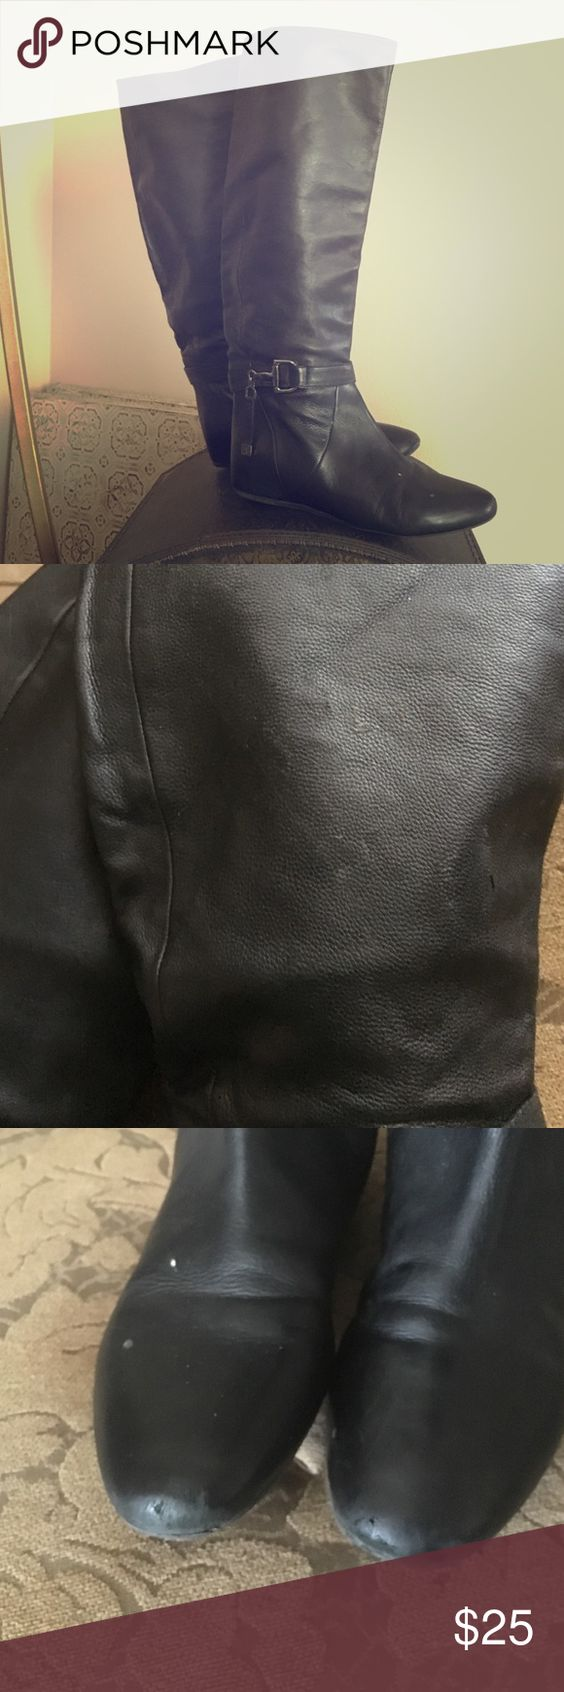 Ivanka Trump black leather boots Look sleek and chic with these fab leather boots! Ive had these for a while but i dont wear them anymore. They do show some wear and they are priced accordingly. A steal for designer boots! They hit me right at knee level. NOT above the knee. Small hidden wedge to add a little bit of height. ❌NO TRADES❌ sorry, no modelling Ivanka Trump Shoes Over the Knee Boots